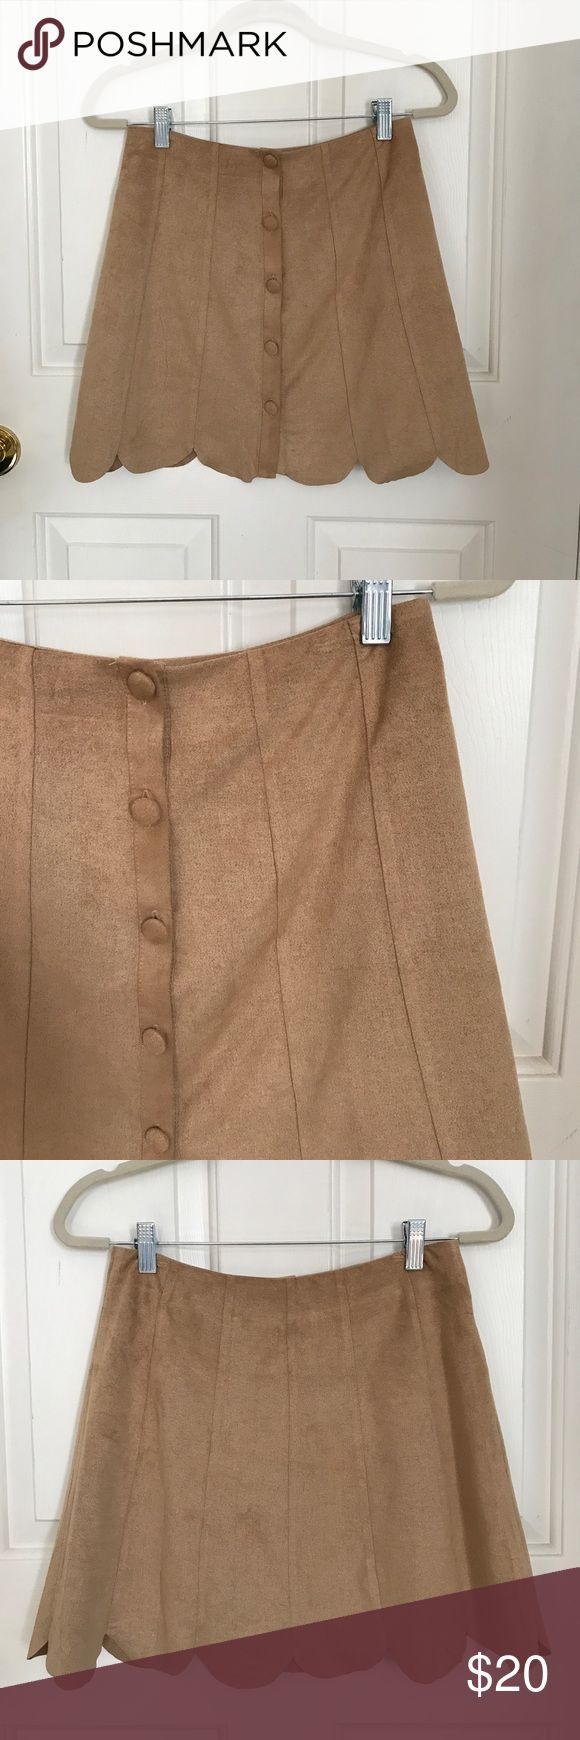 Scalloped Button Down Skirt This cute khaki skirt is perfect for school uniform, work, or parties! The scallop detail is so cute! Worn once. Sadie & Sage Skirts Mini